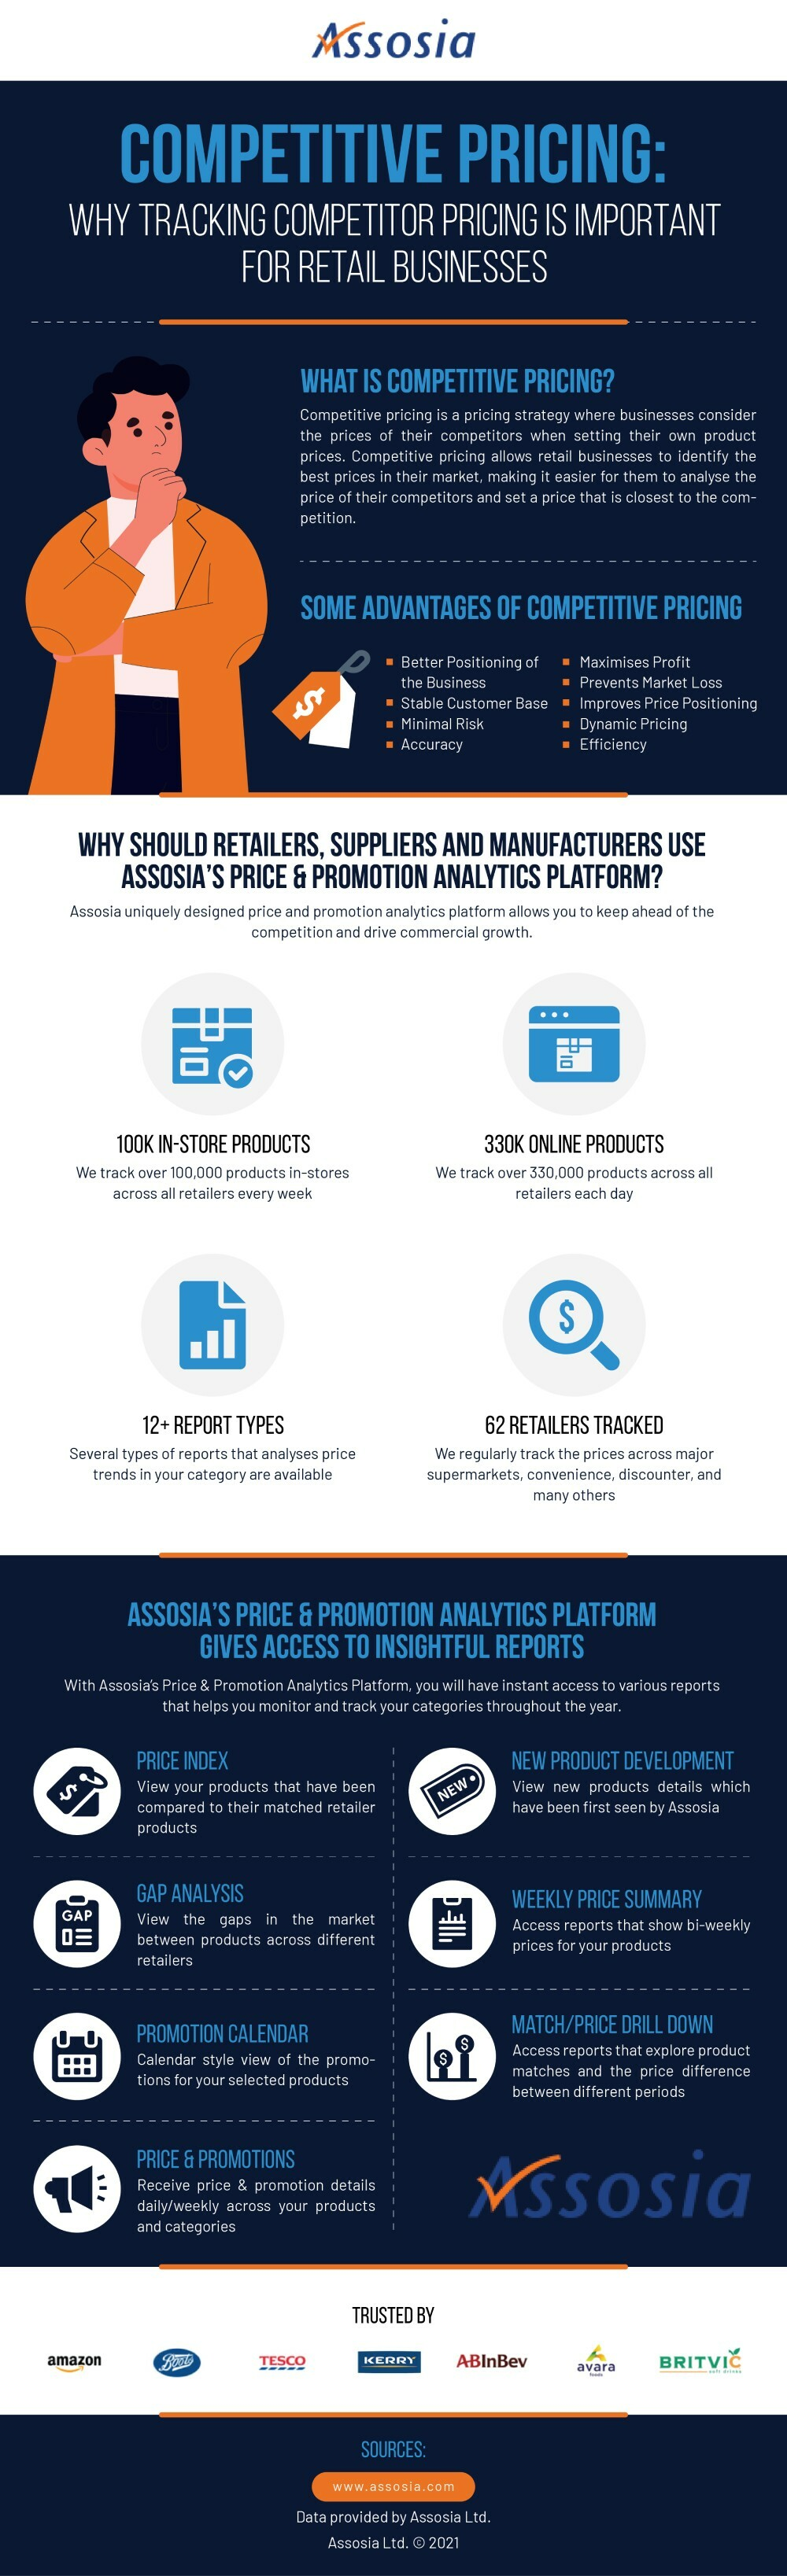 competitive pricing infographic